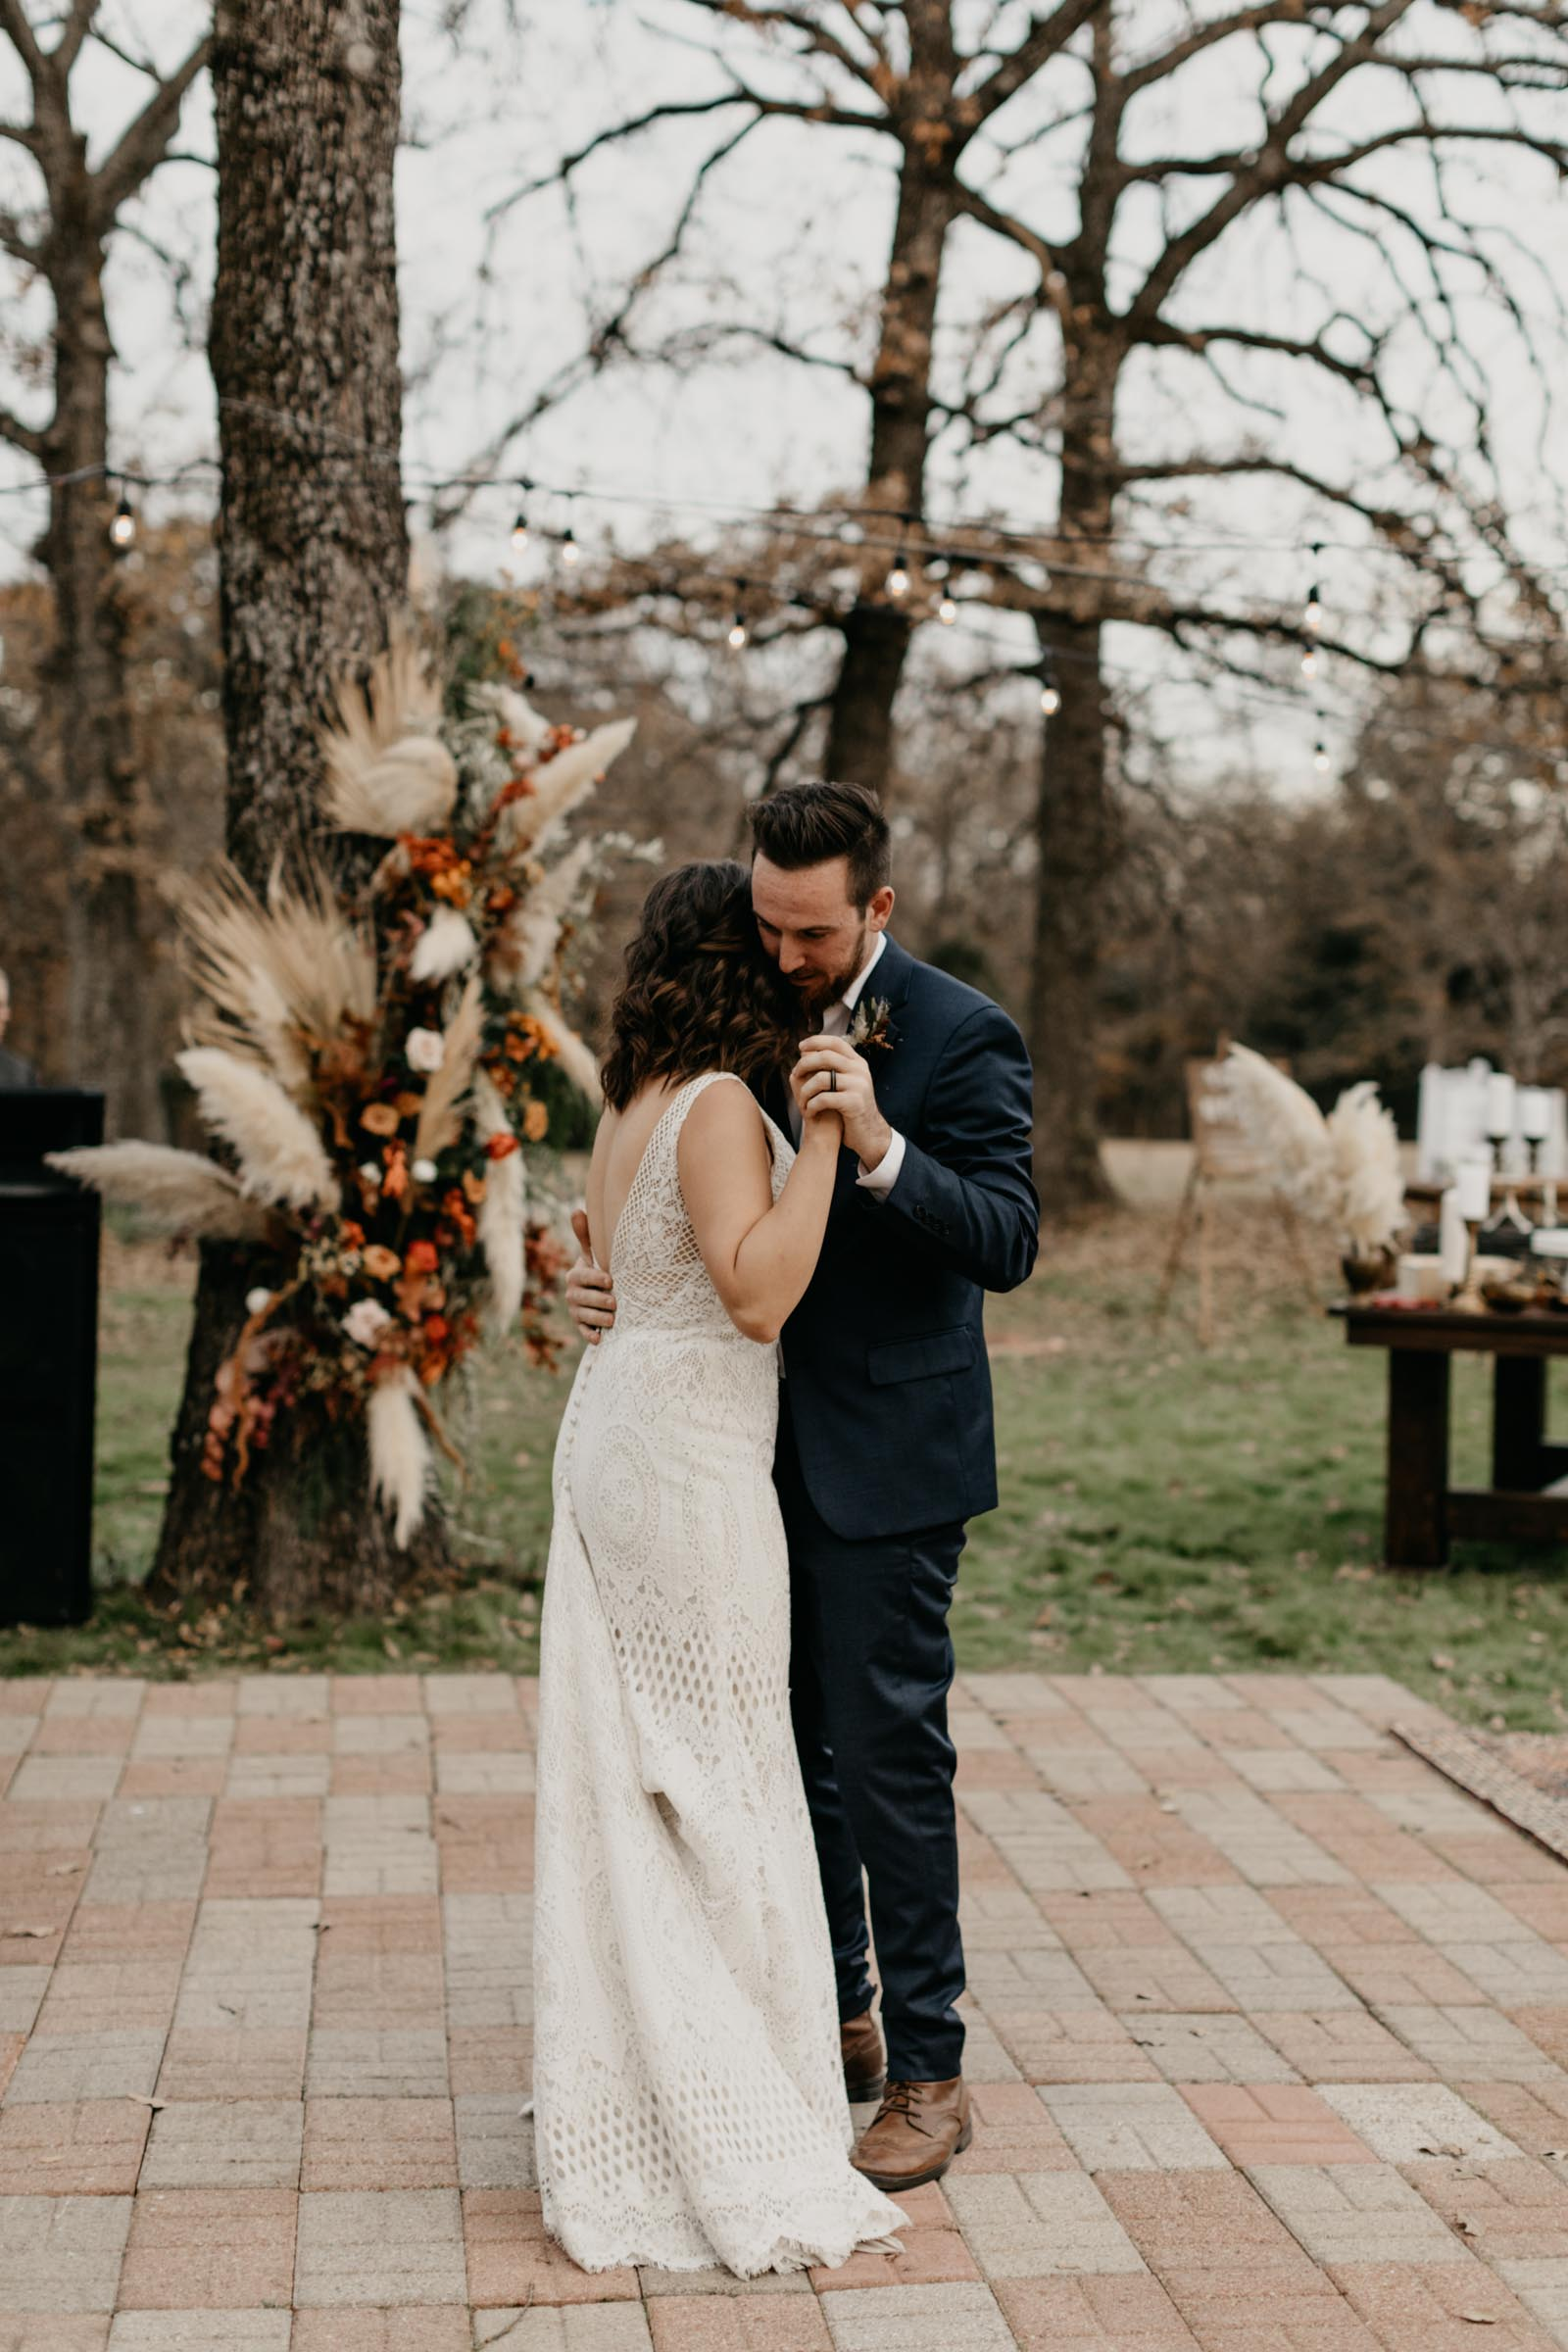 Bride and groom sharing their first dance in Fort Worth at their backyard wedding